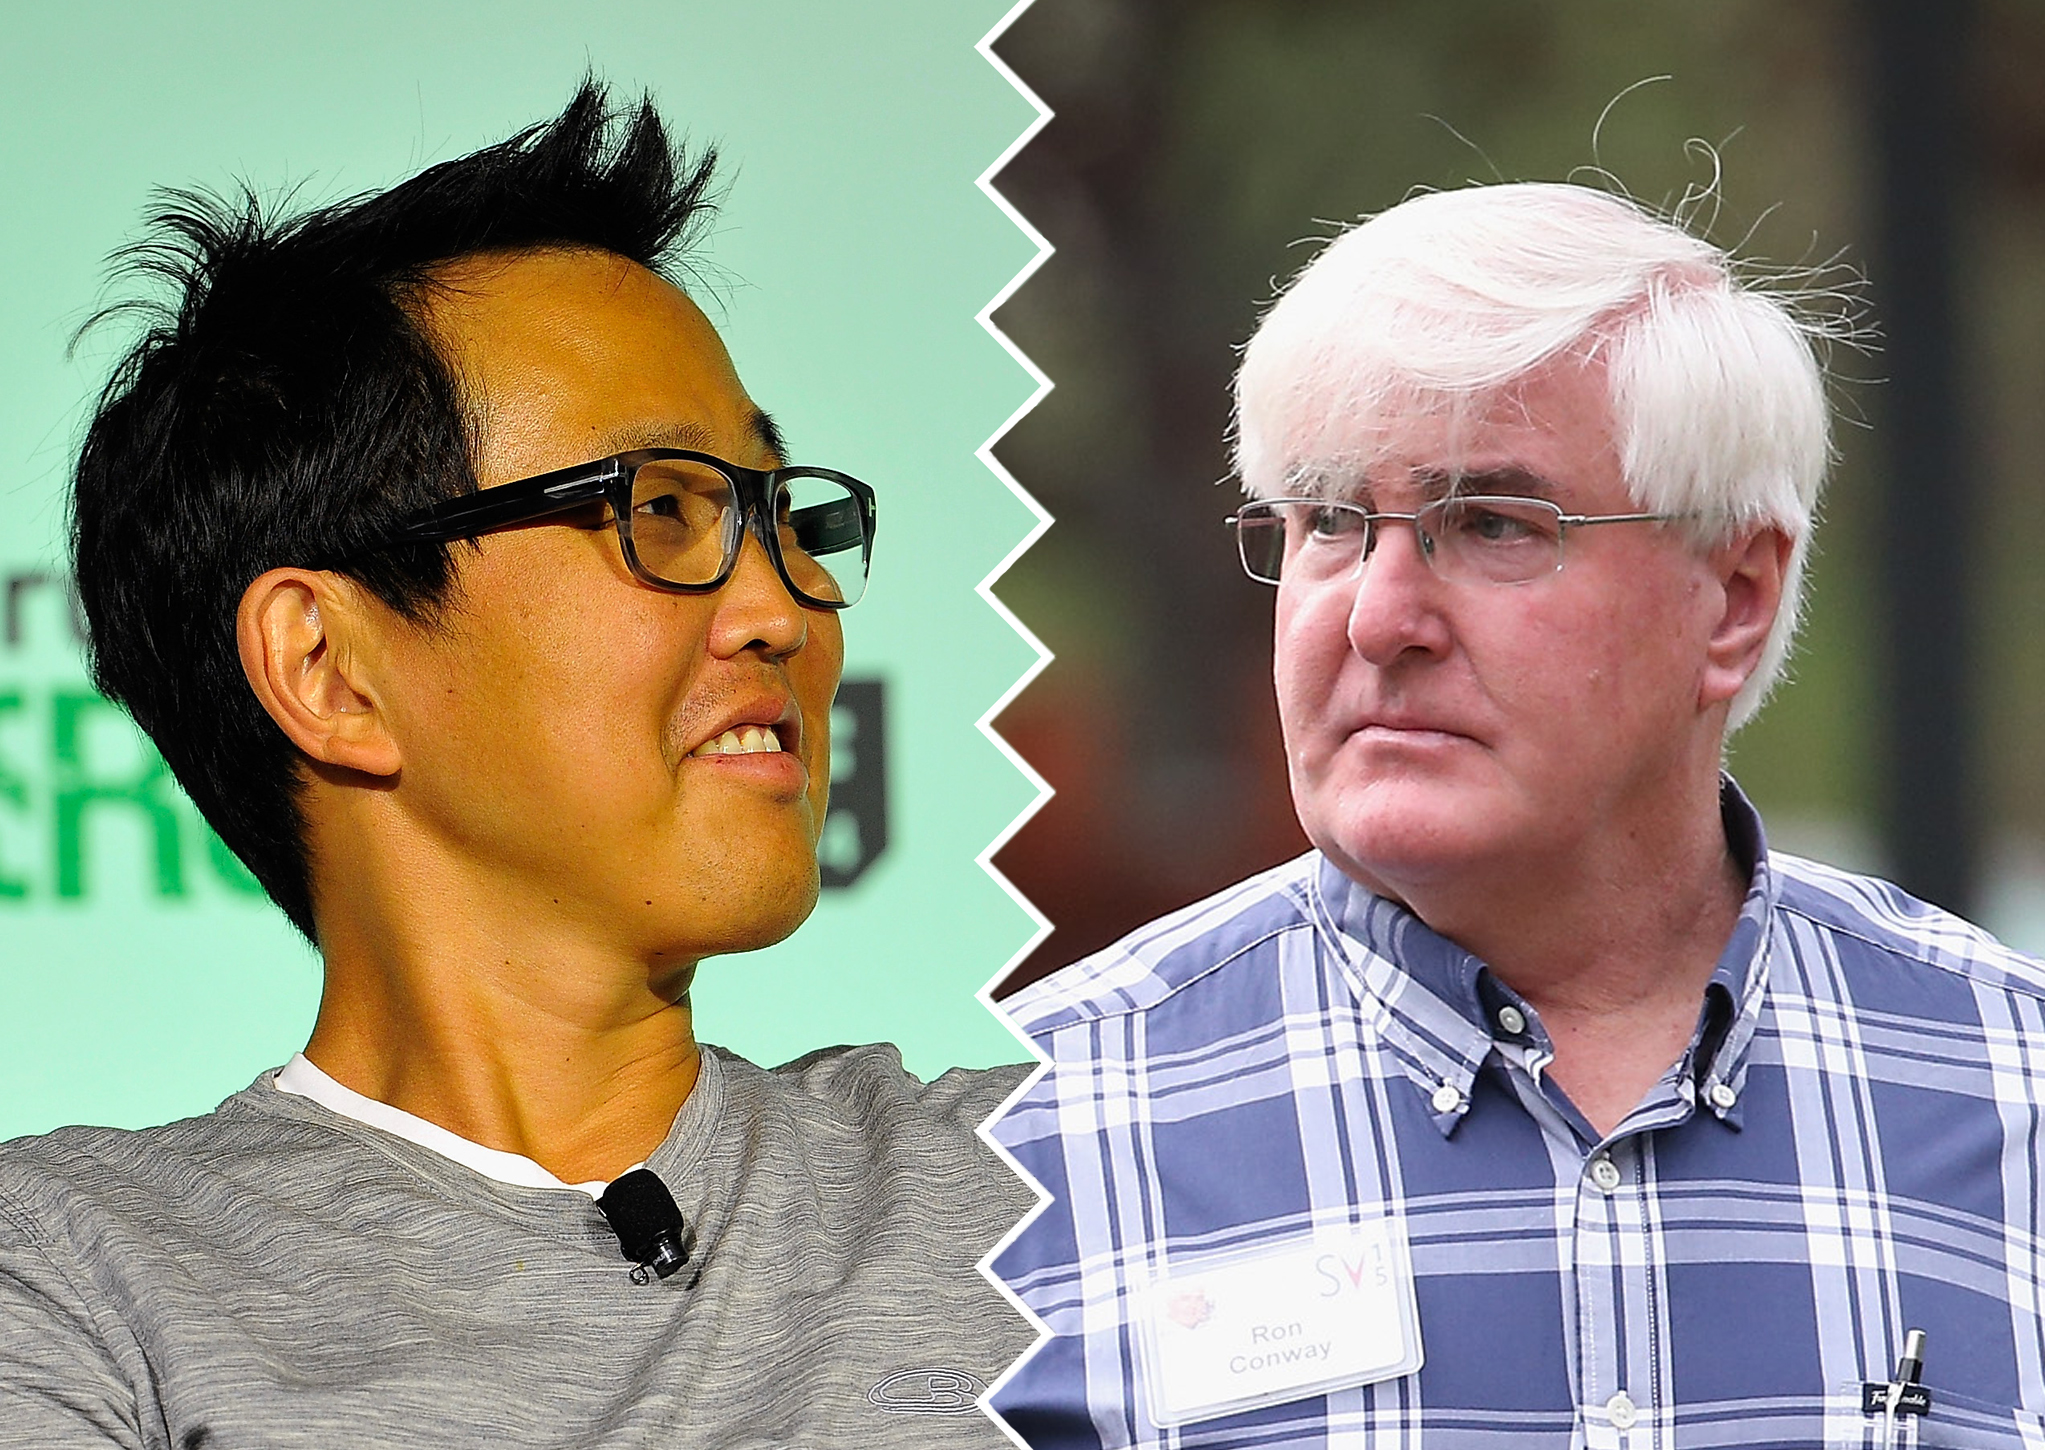 David Lee (left) and Ron Conway (right) former partners at SV Angel.